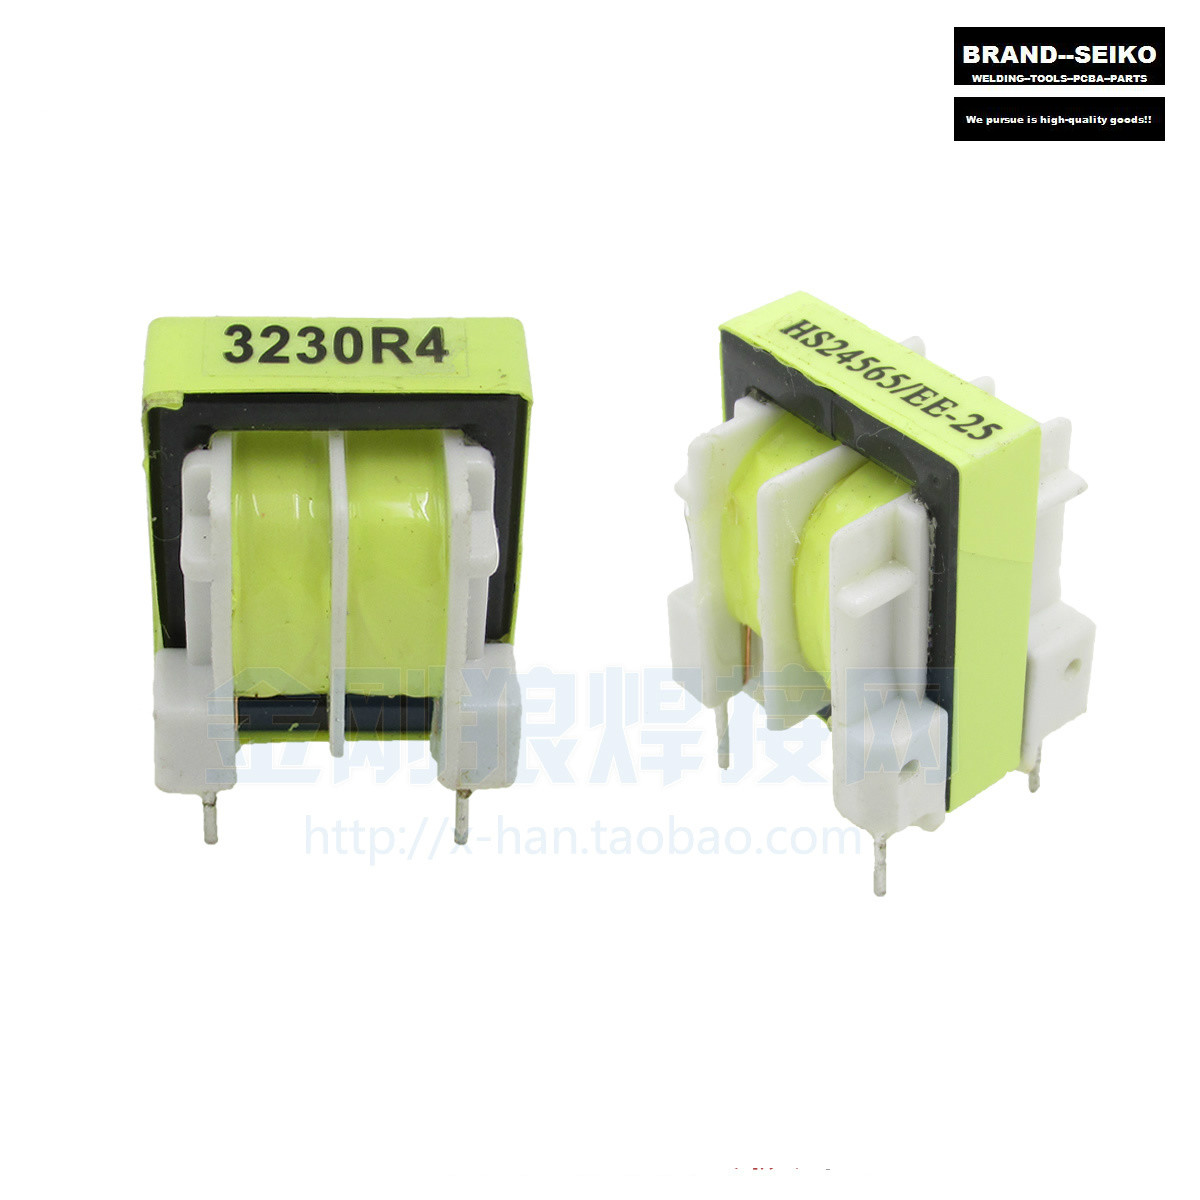 Universal Argon Arc Welding Plasma Cutting High Press Plate Transformer Power Controller Circuit 2pcs Lot Machine Wse Tig Hand Switch Board Isolation 24565